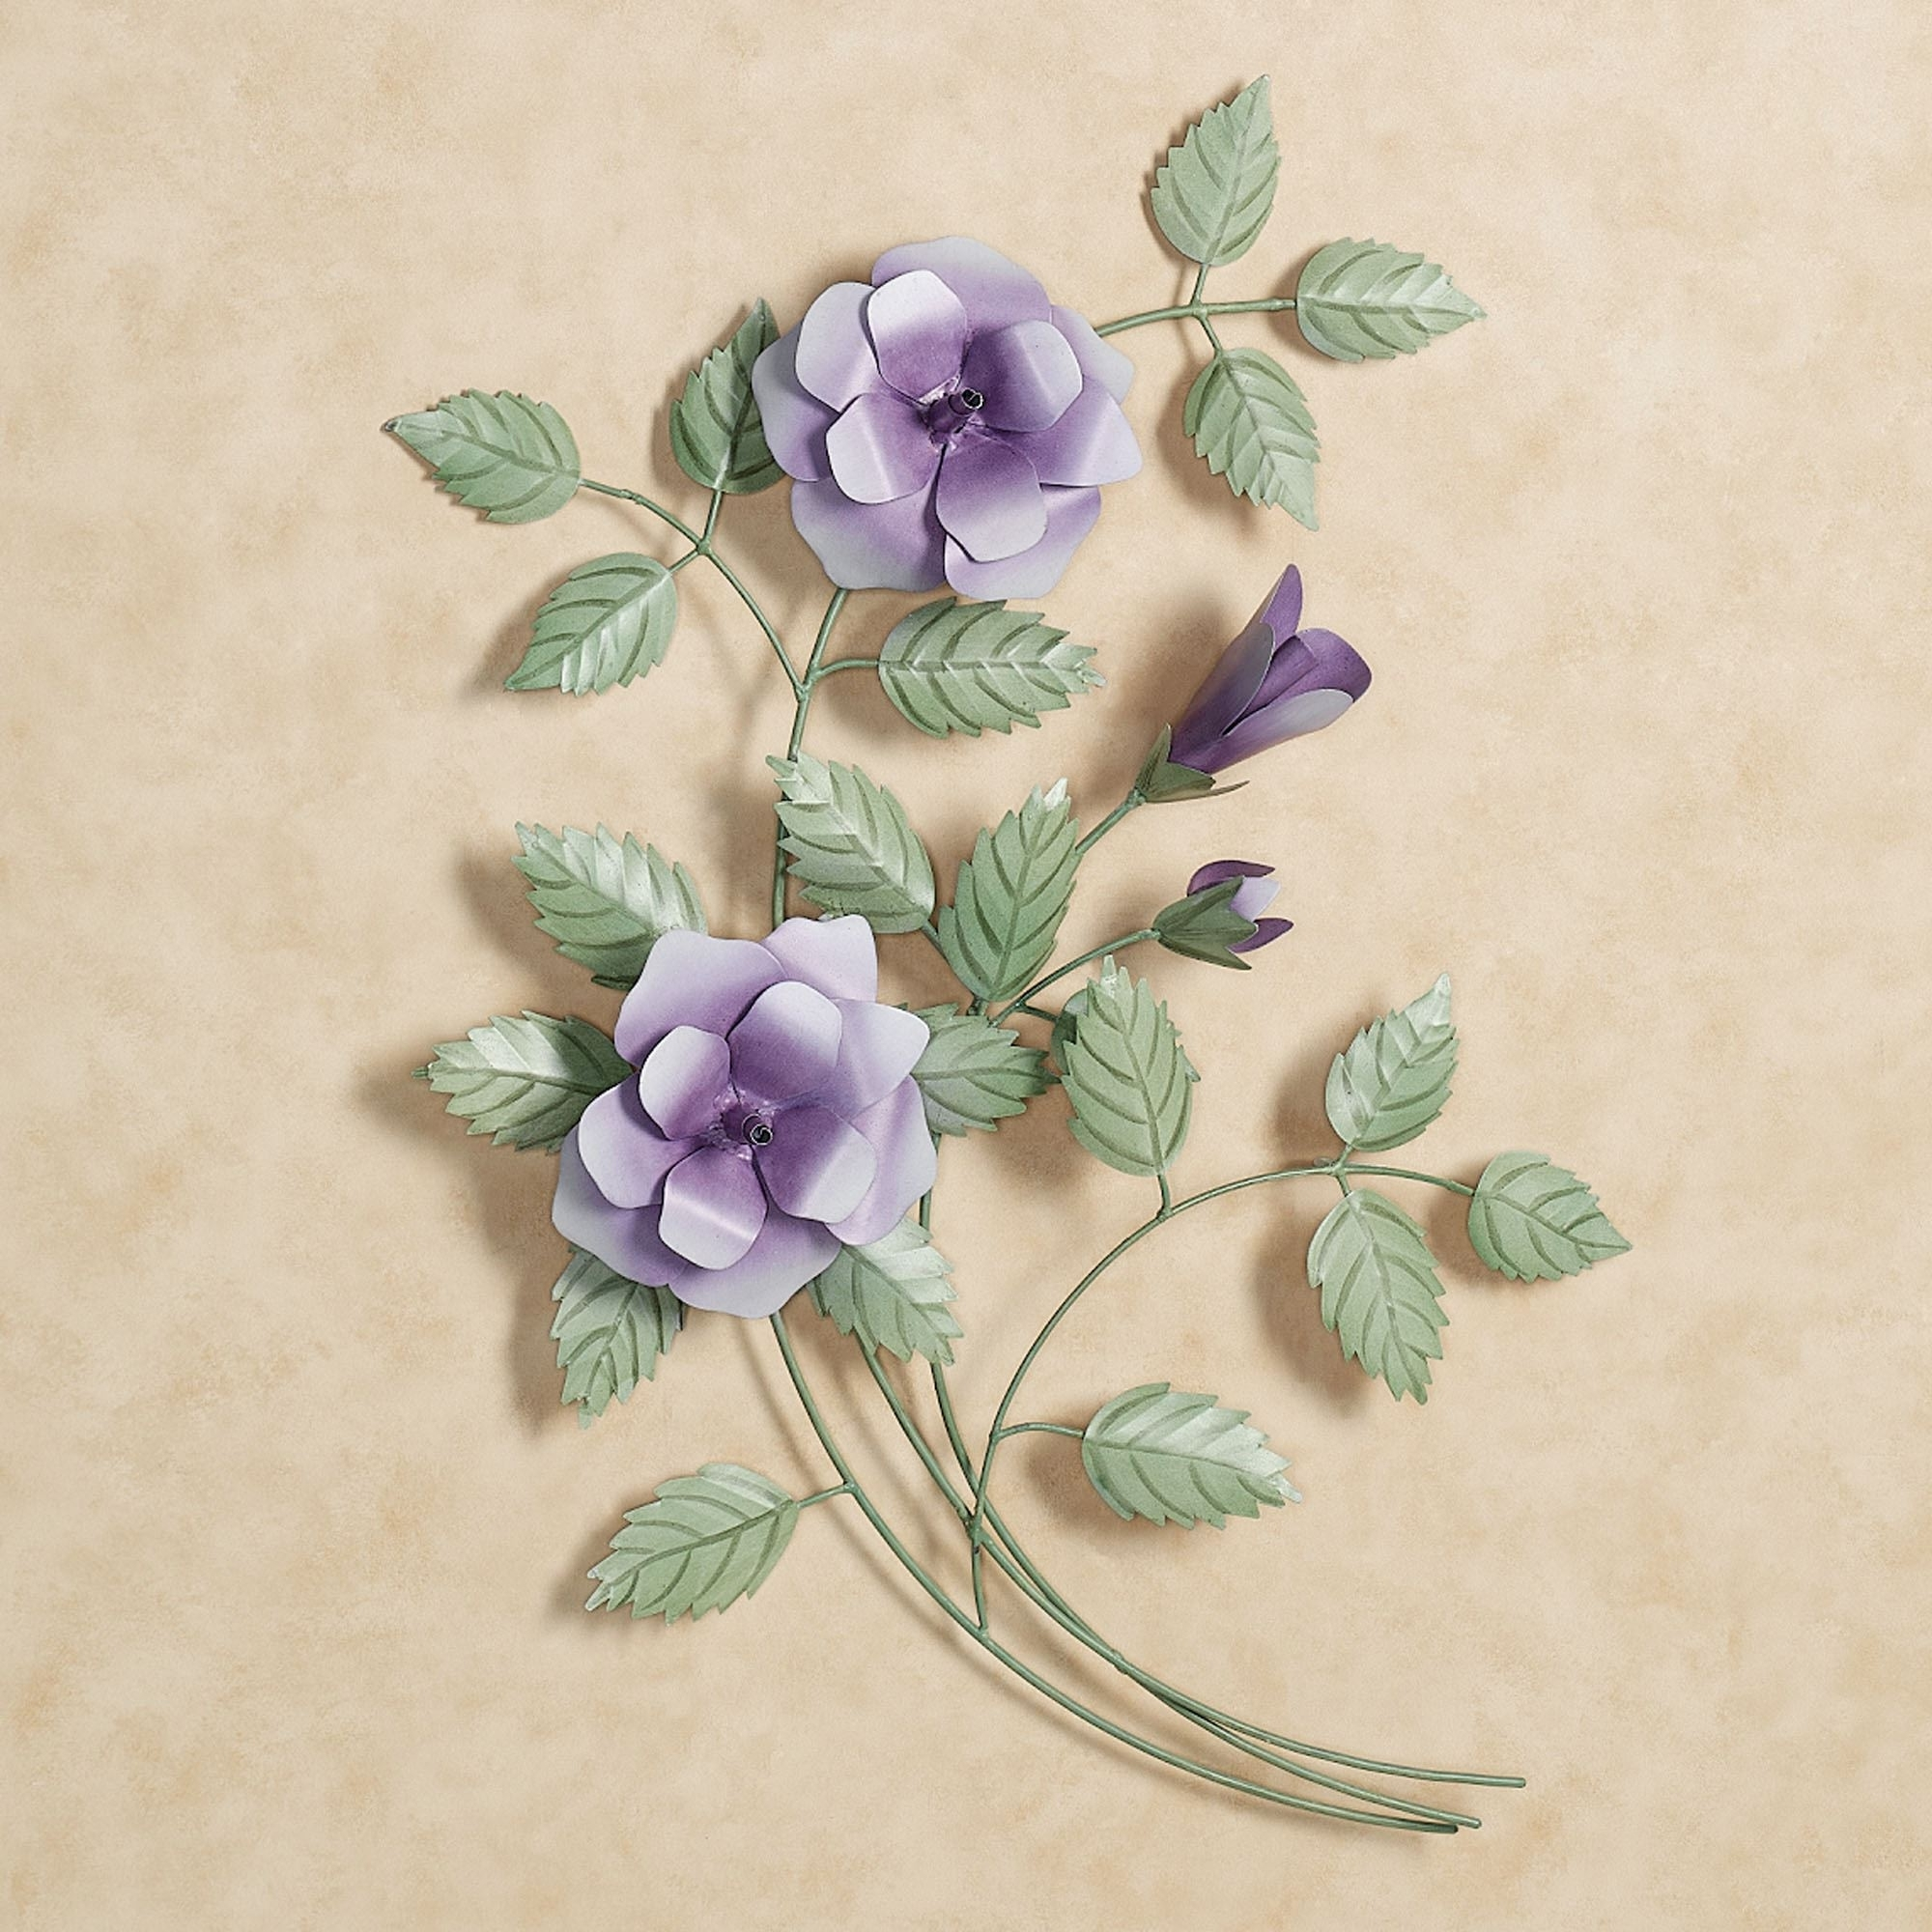 Best And Newest Purple Flower Metal Wall Art With Les Fleurs Purple Rose Spray Metal Wall Art (View 1 of 15)